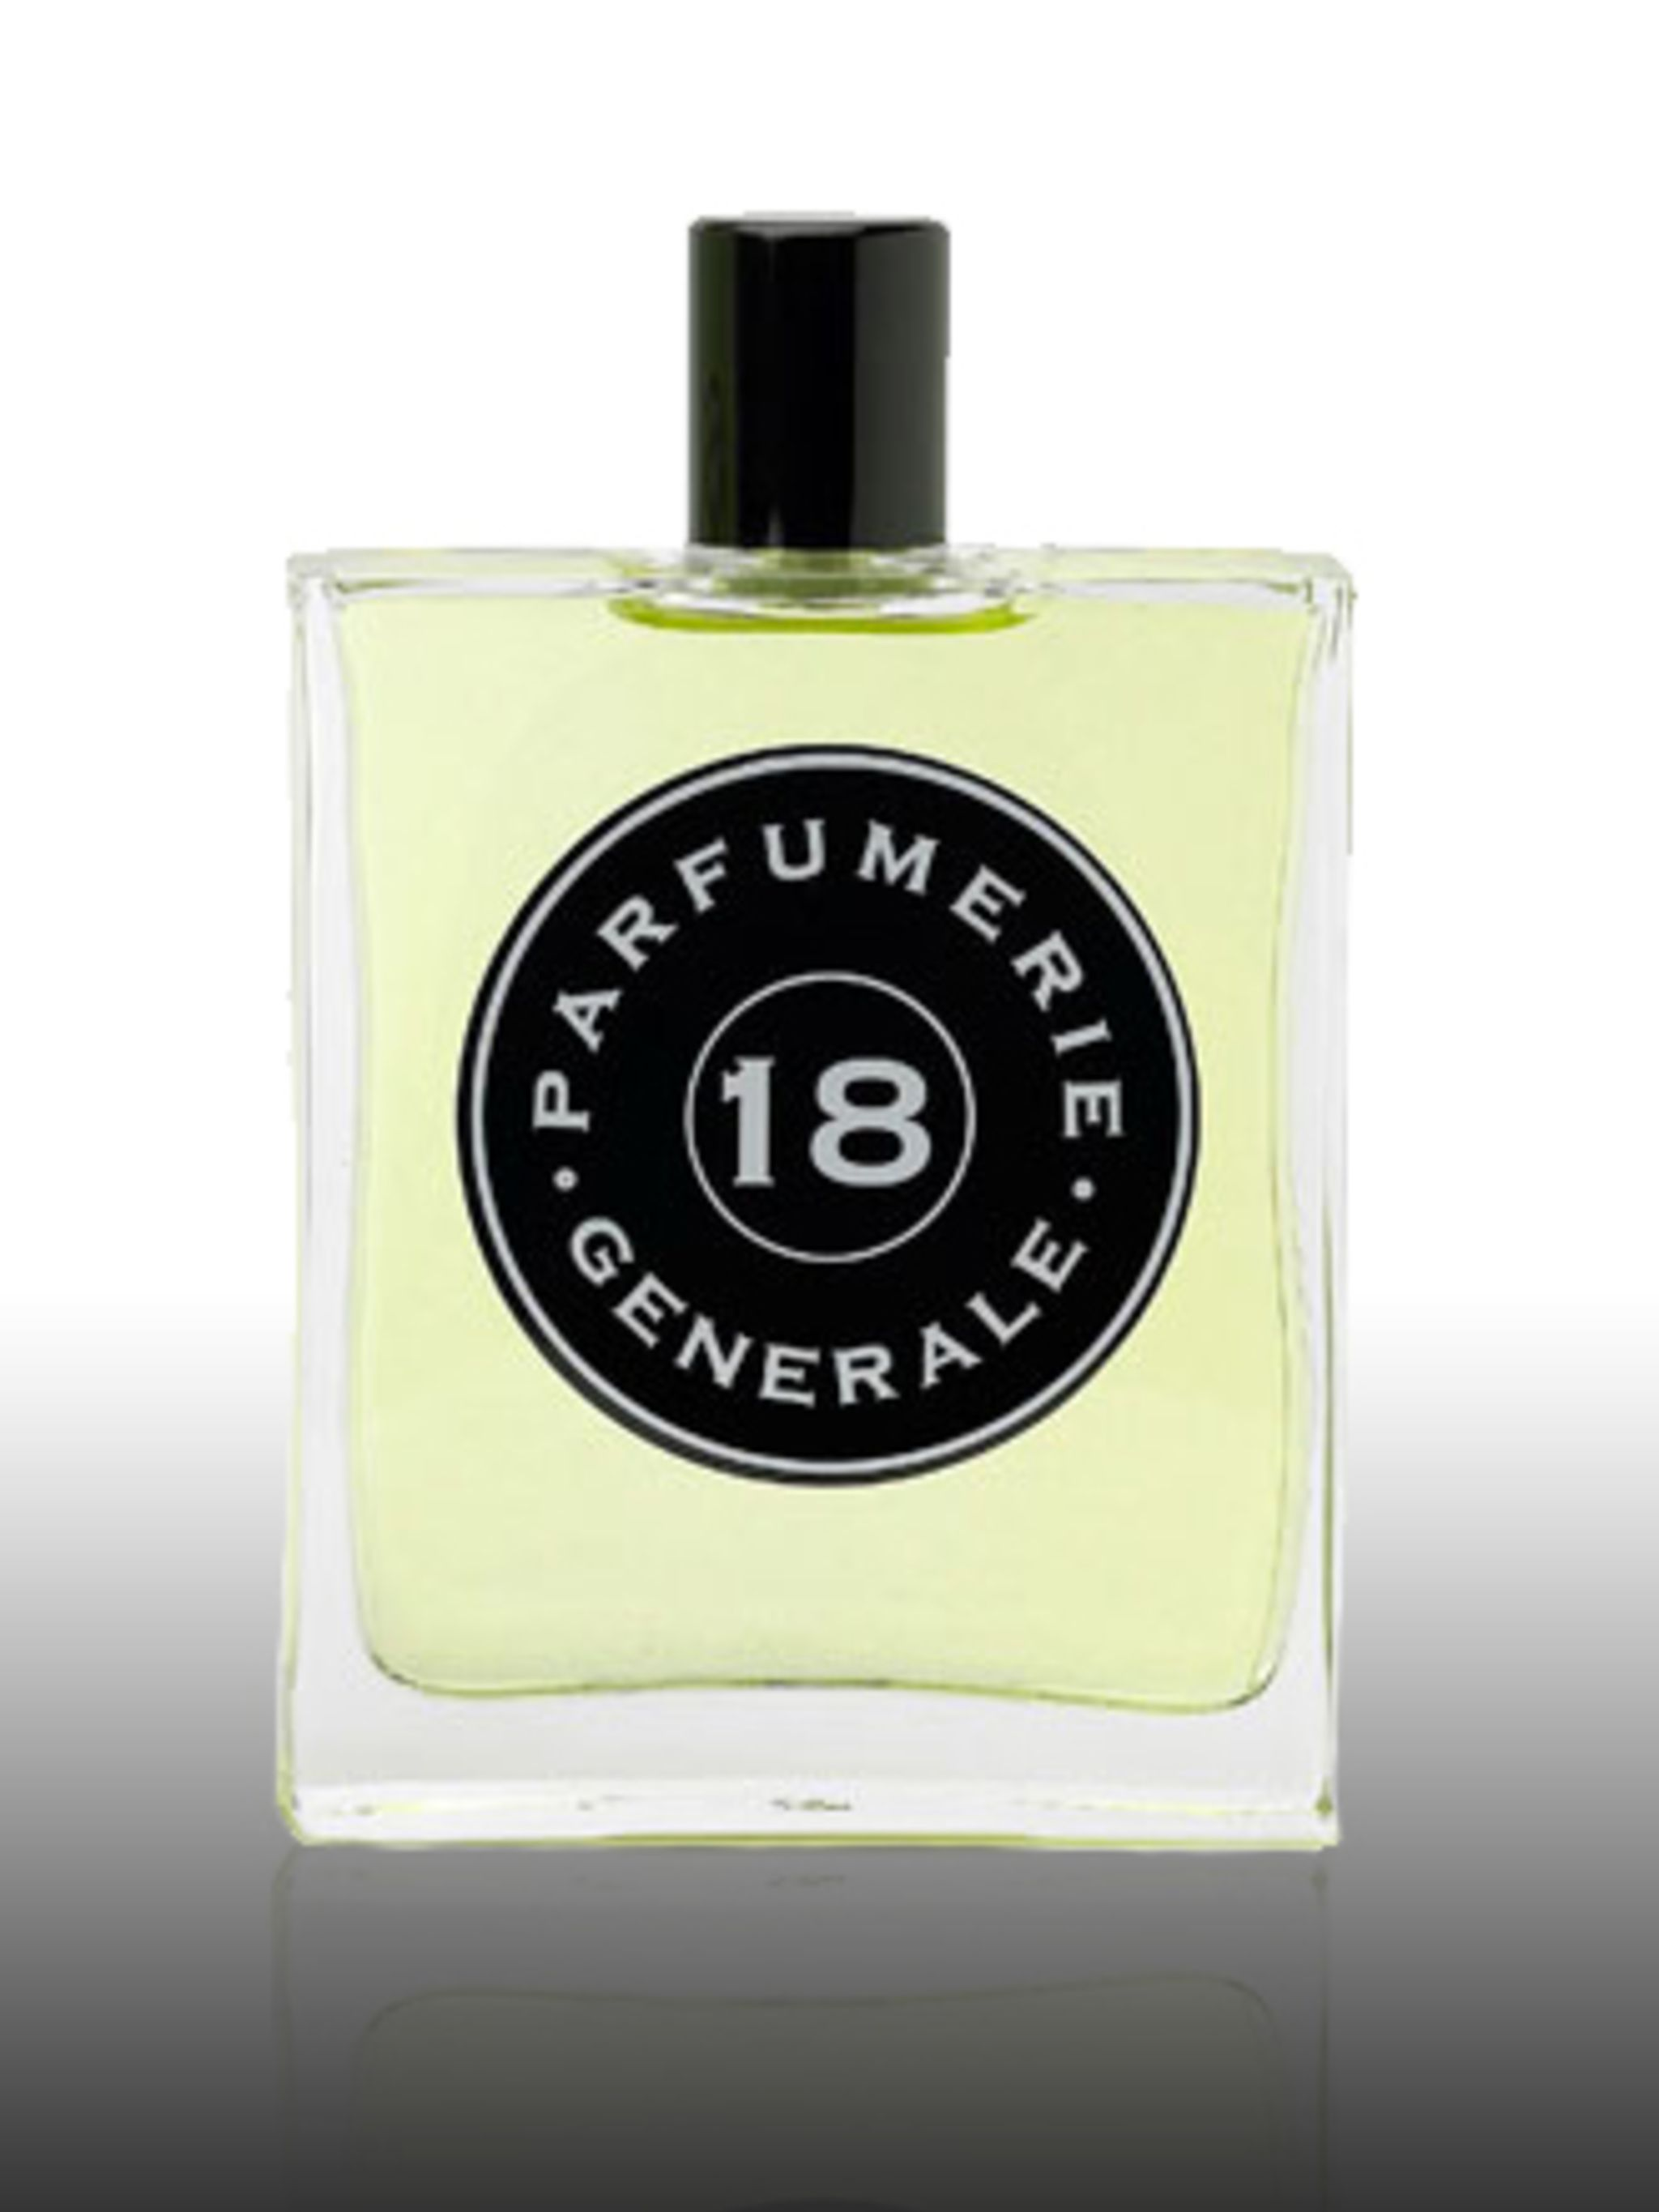 """<p>Cadjmere 18, £63.50 by Parfumerie Generale at <a href=""""http://www.lessenteurs.com/"""">Les Senteurs</a> </p><p>Founded by Creative Perfumer Pierre Guillaume in 2002, French brand Parfumerie Generale (the name echoes his initials) fuses the world of perfum"""